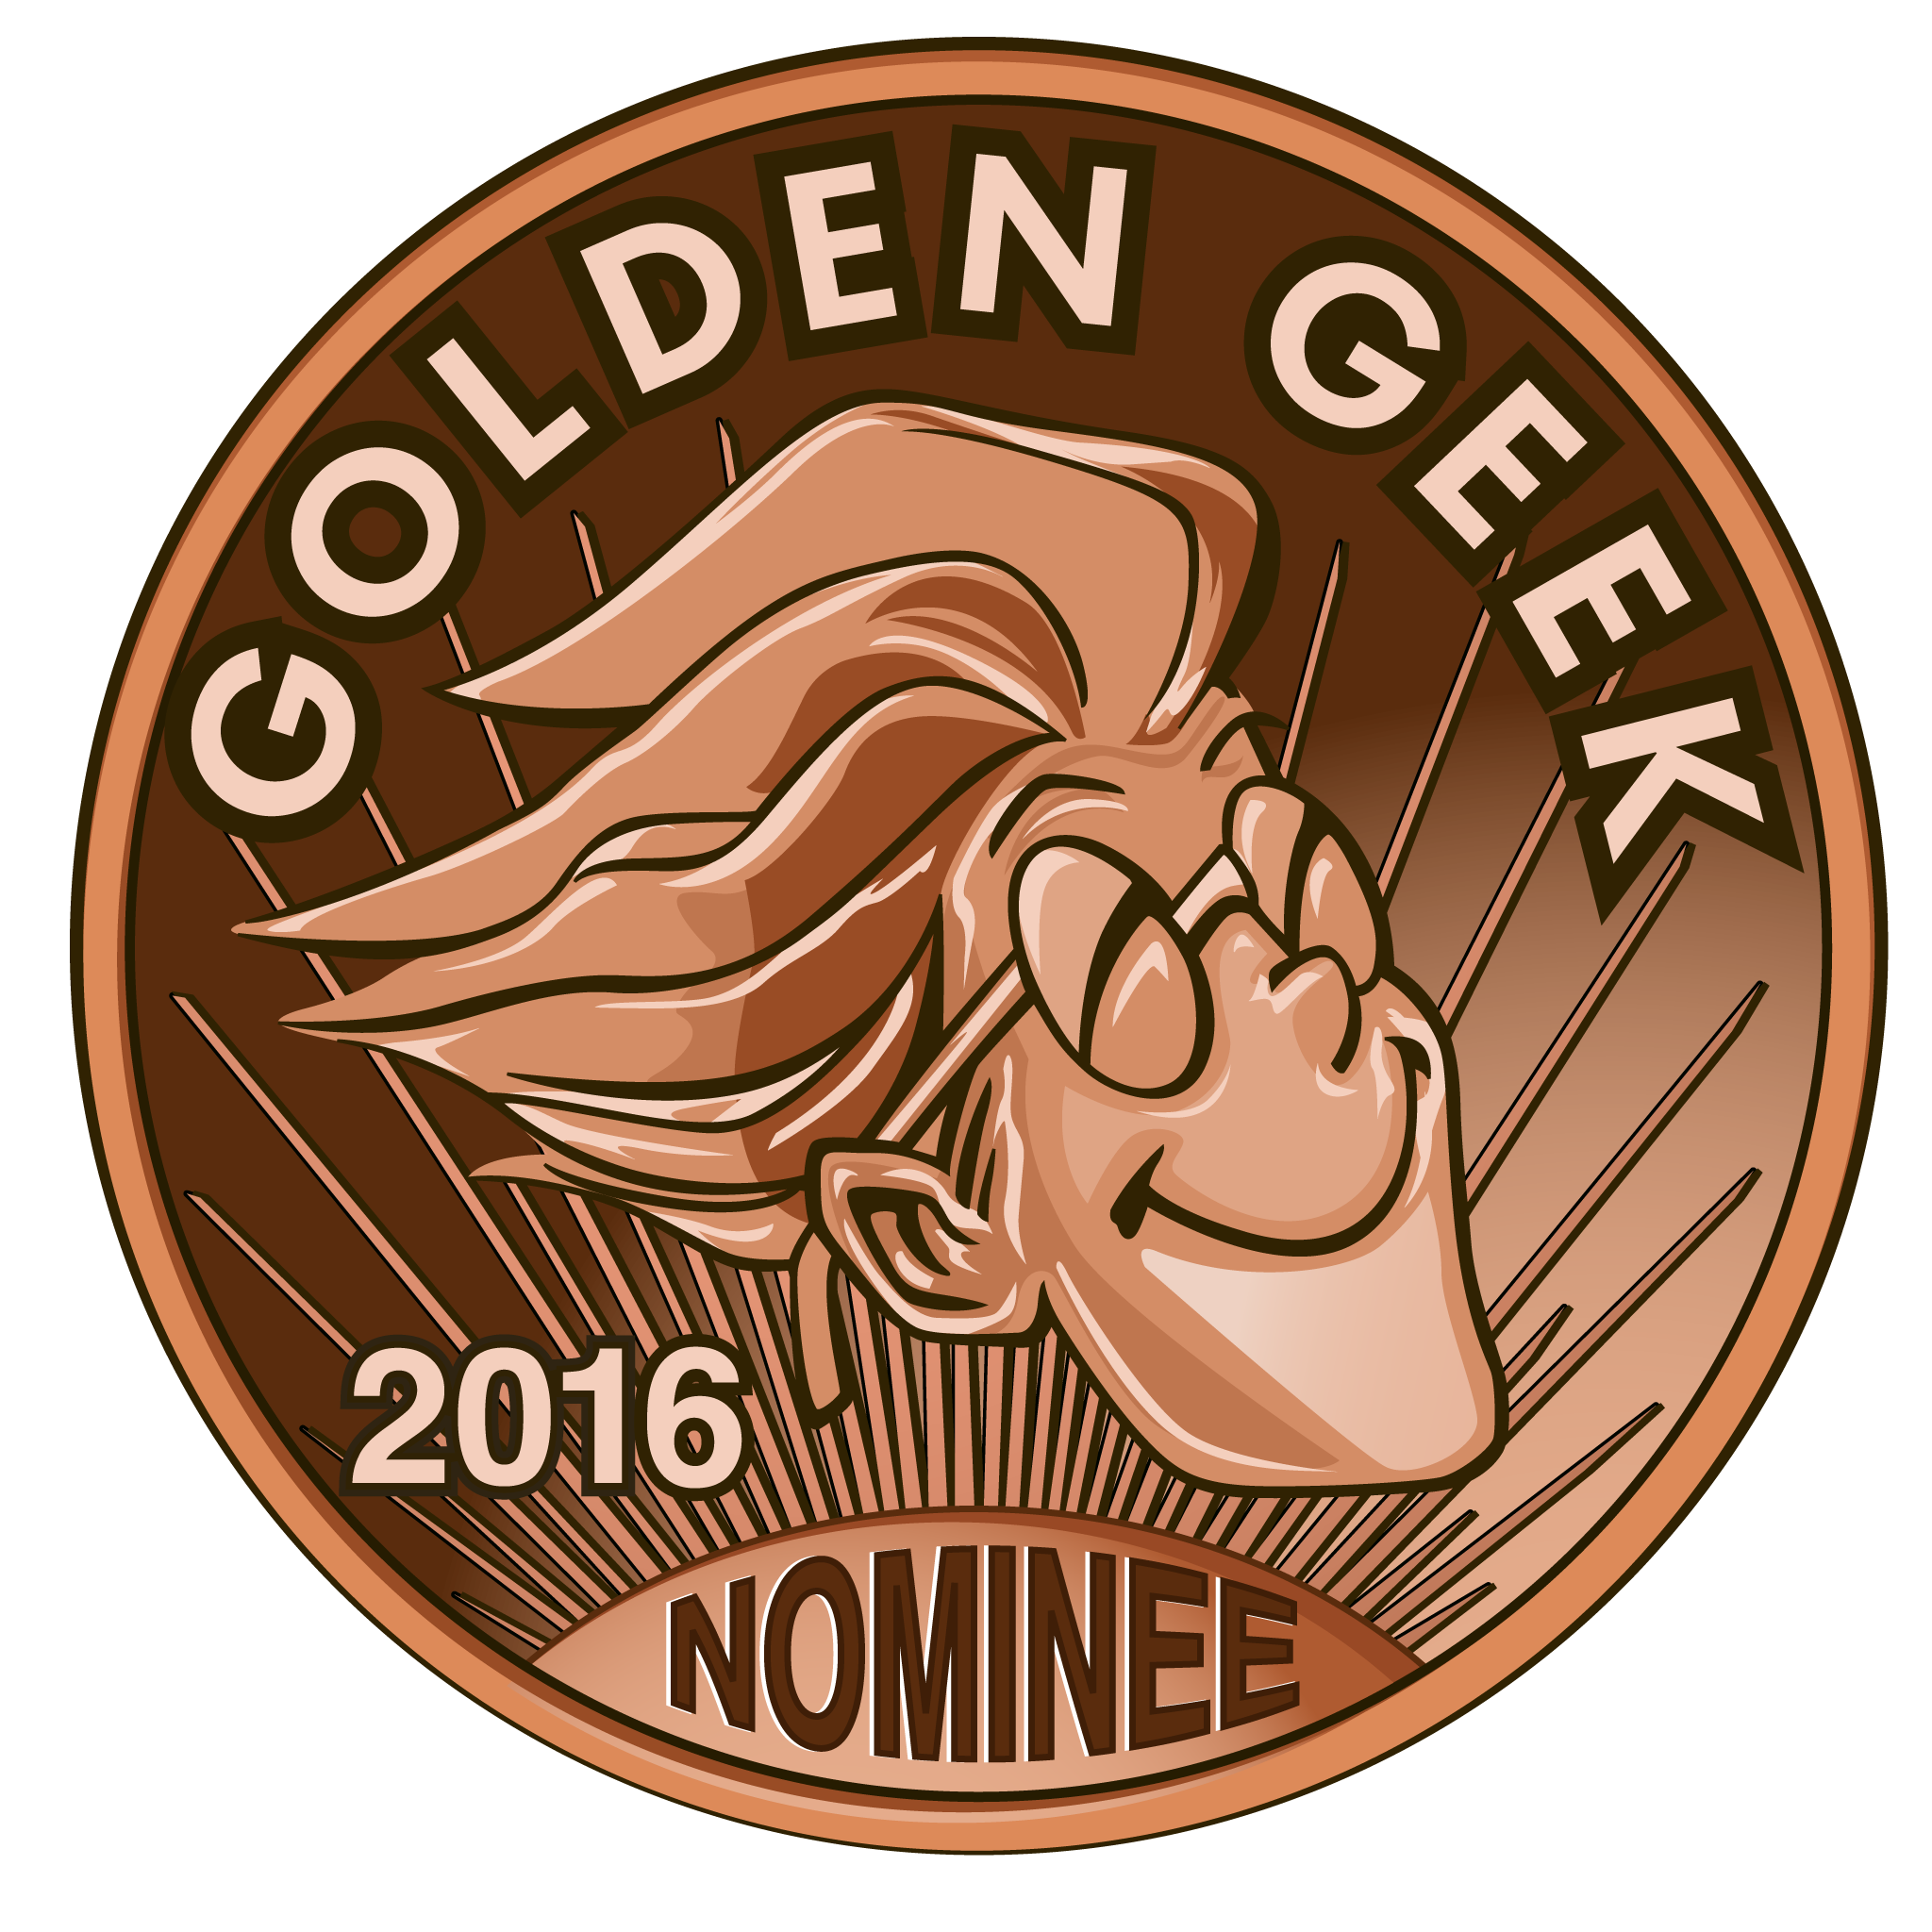 Golden Geek 2016 Nominee